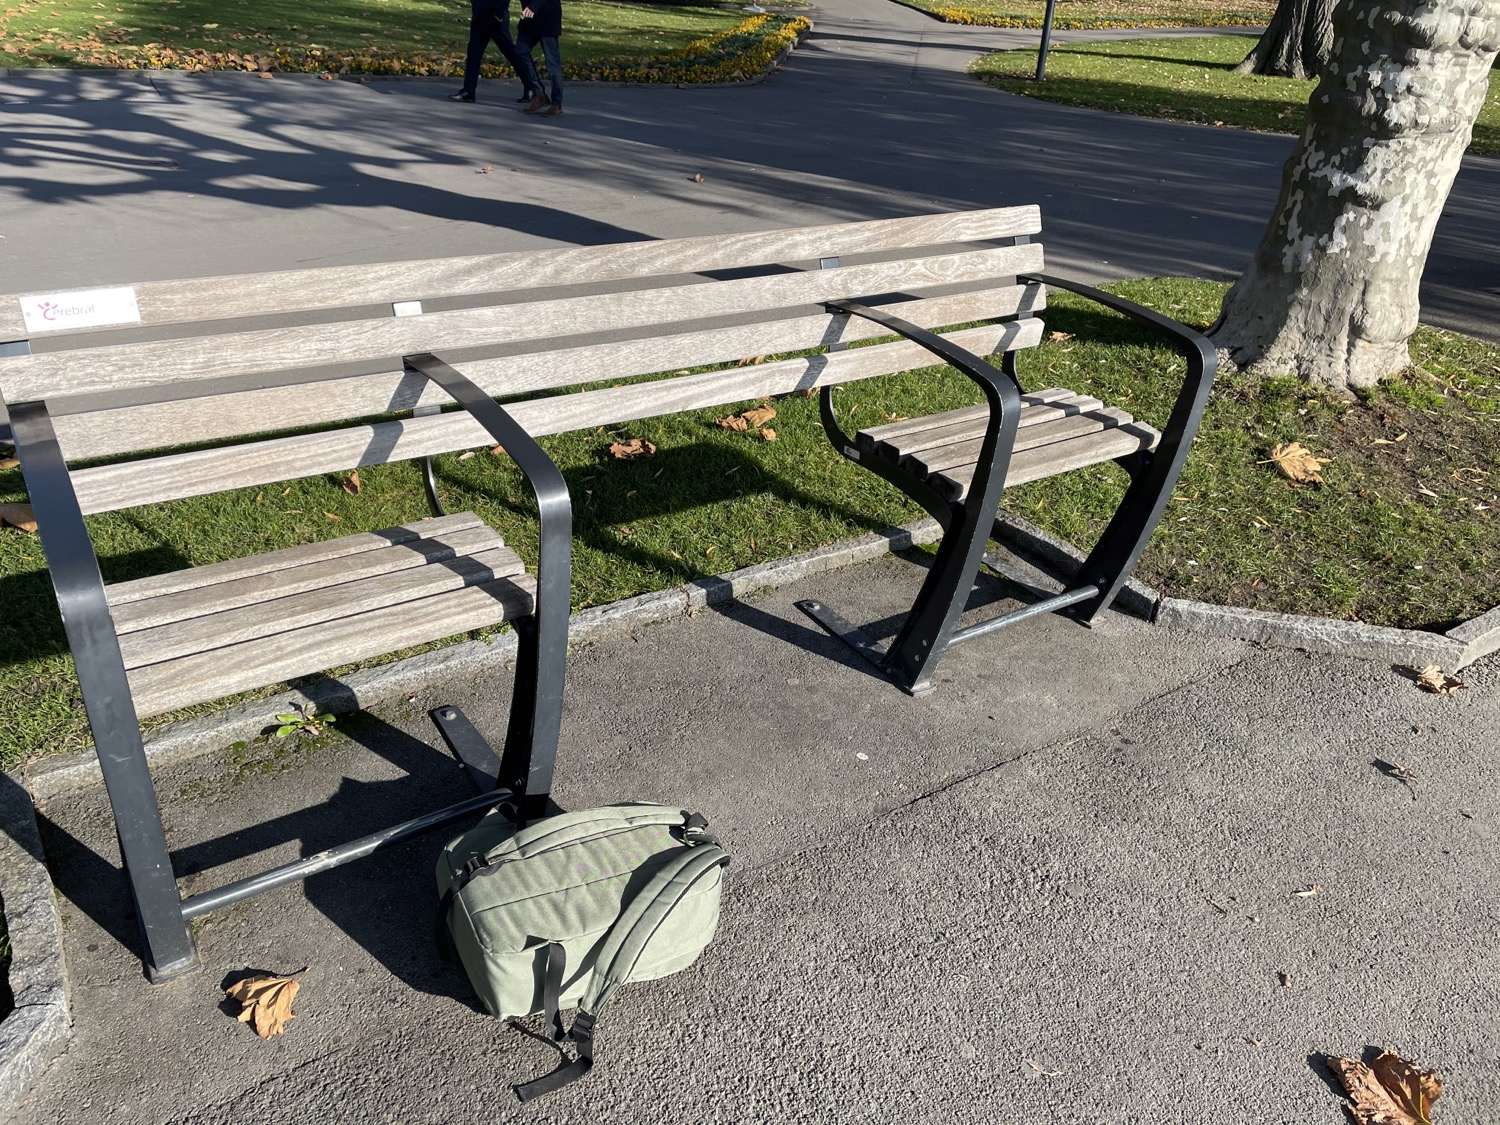 A strange bench. Why would you install such a thing?